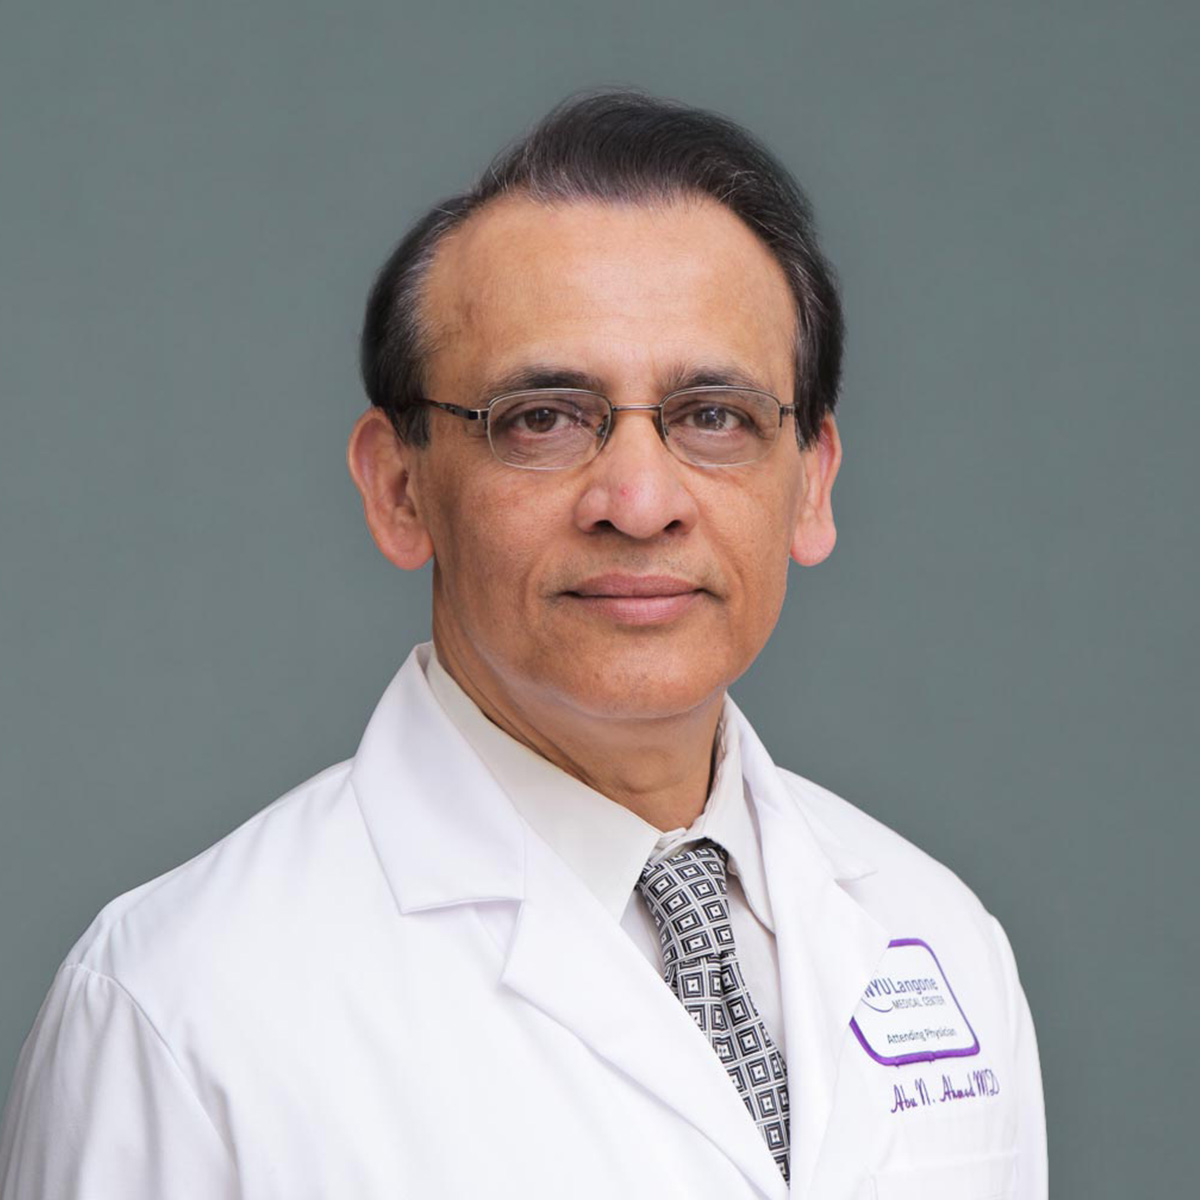 Abu Ahmed,MD. Medical Oncology, Hematology